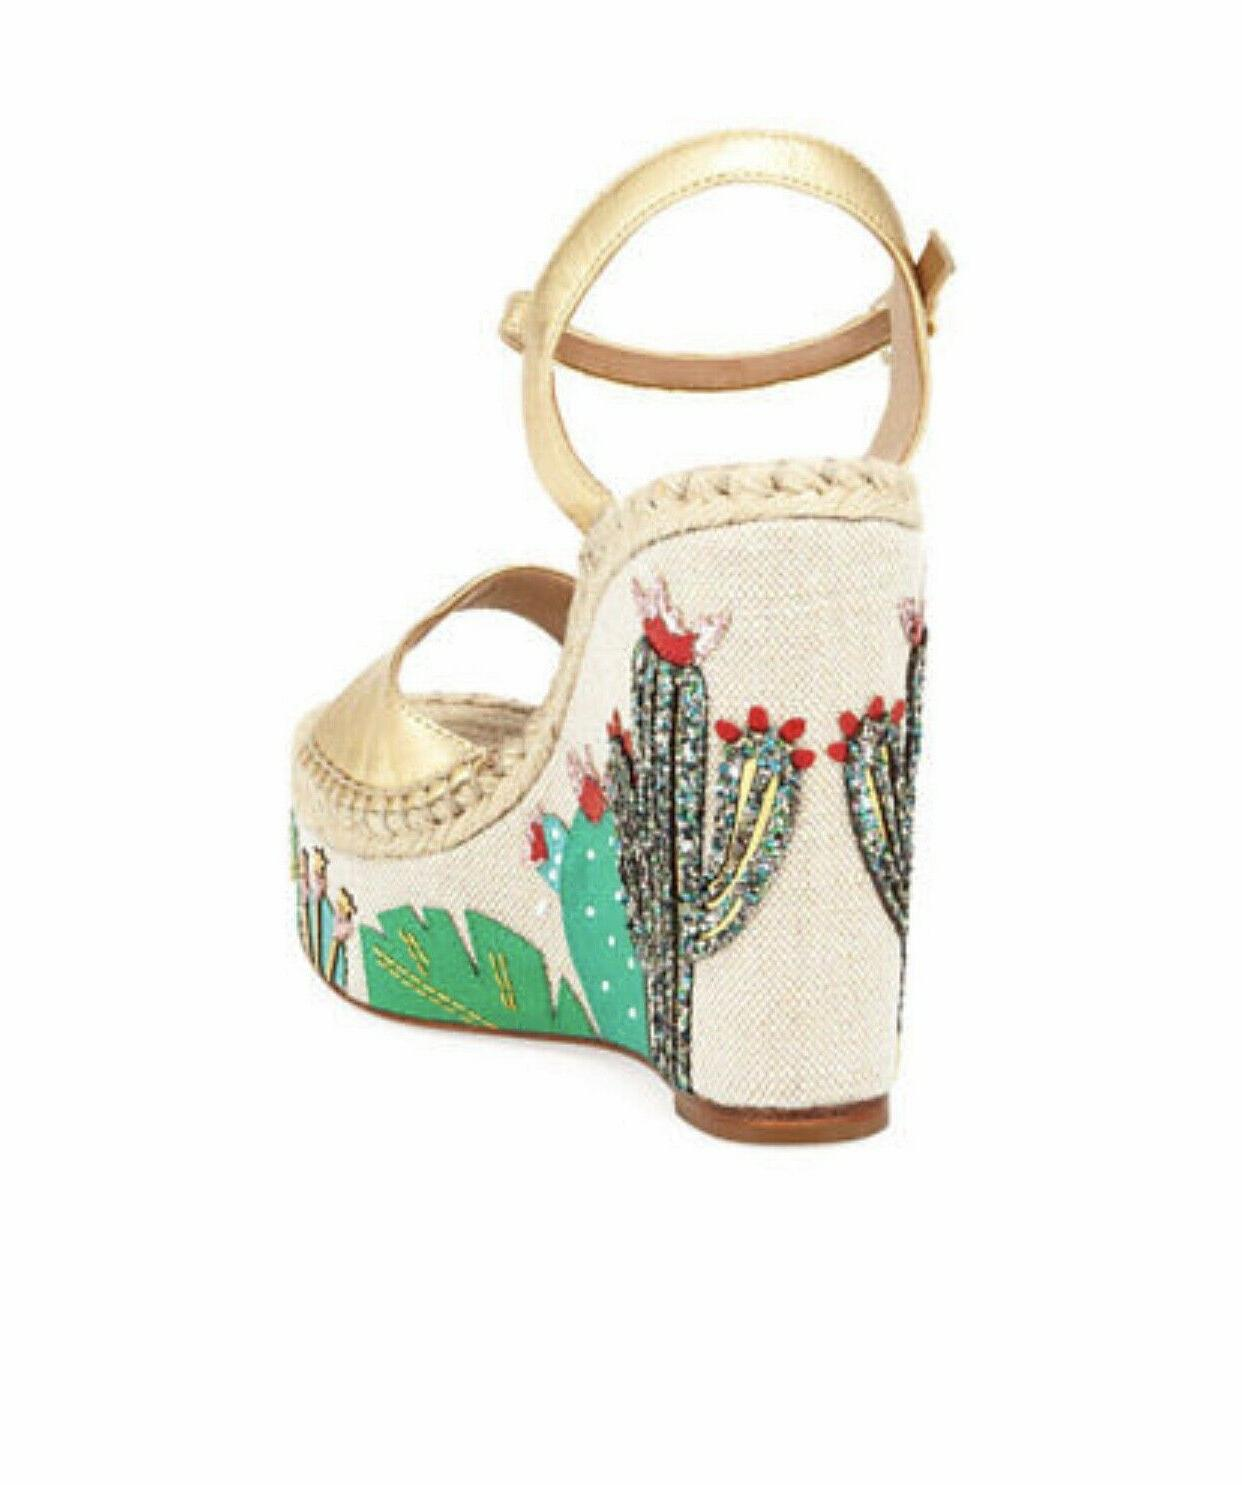 size WEDGE ankle strap